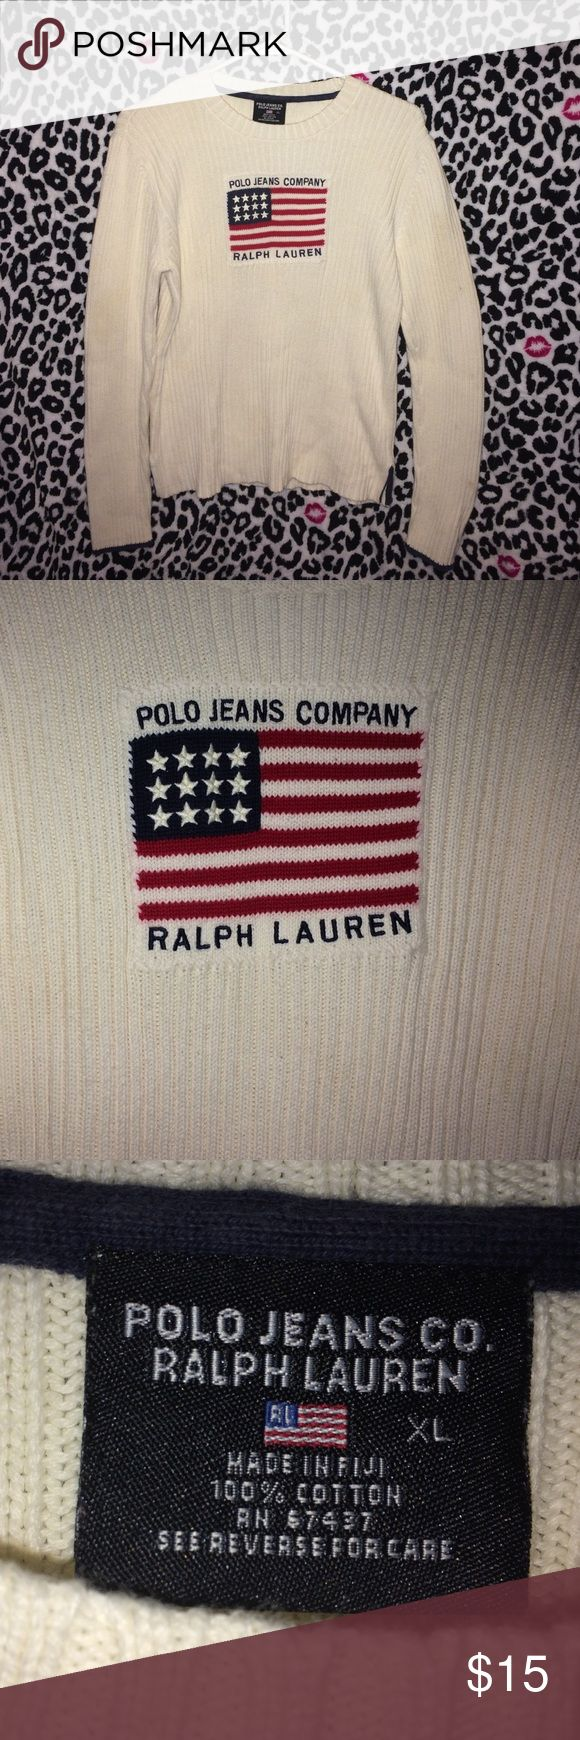 Ralph Lauren Polo Sweater Ralph Lauren Polo Ribbed Sweater. Cream/Off White in color. Beautiful Sweater. One of my favorites. Just kind of grew out of it. Polo by Ralph Lauren Sweaters Crew & Scoop Necks